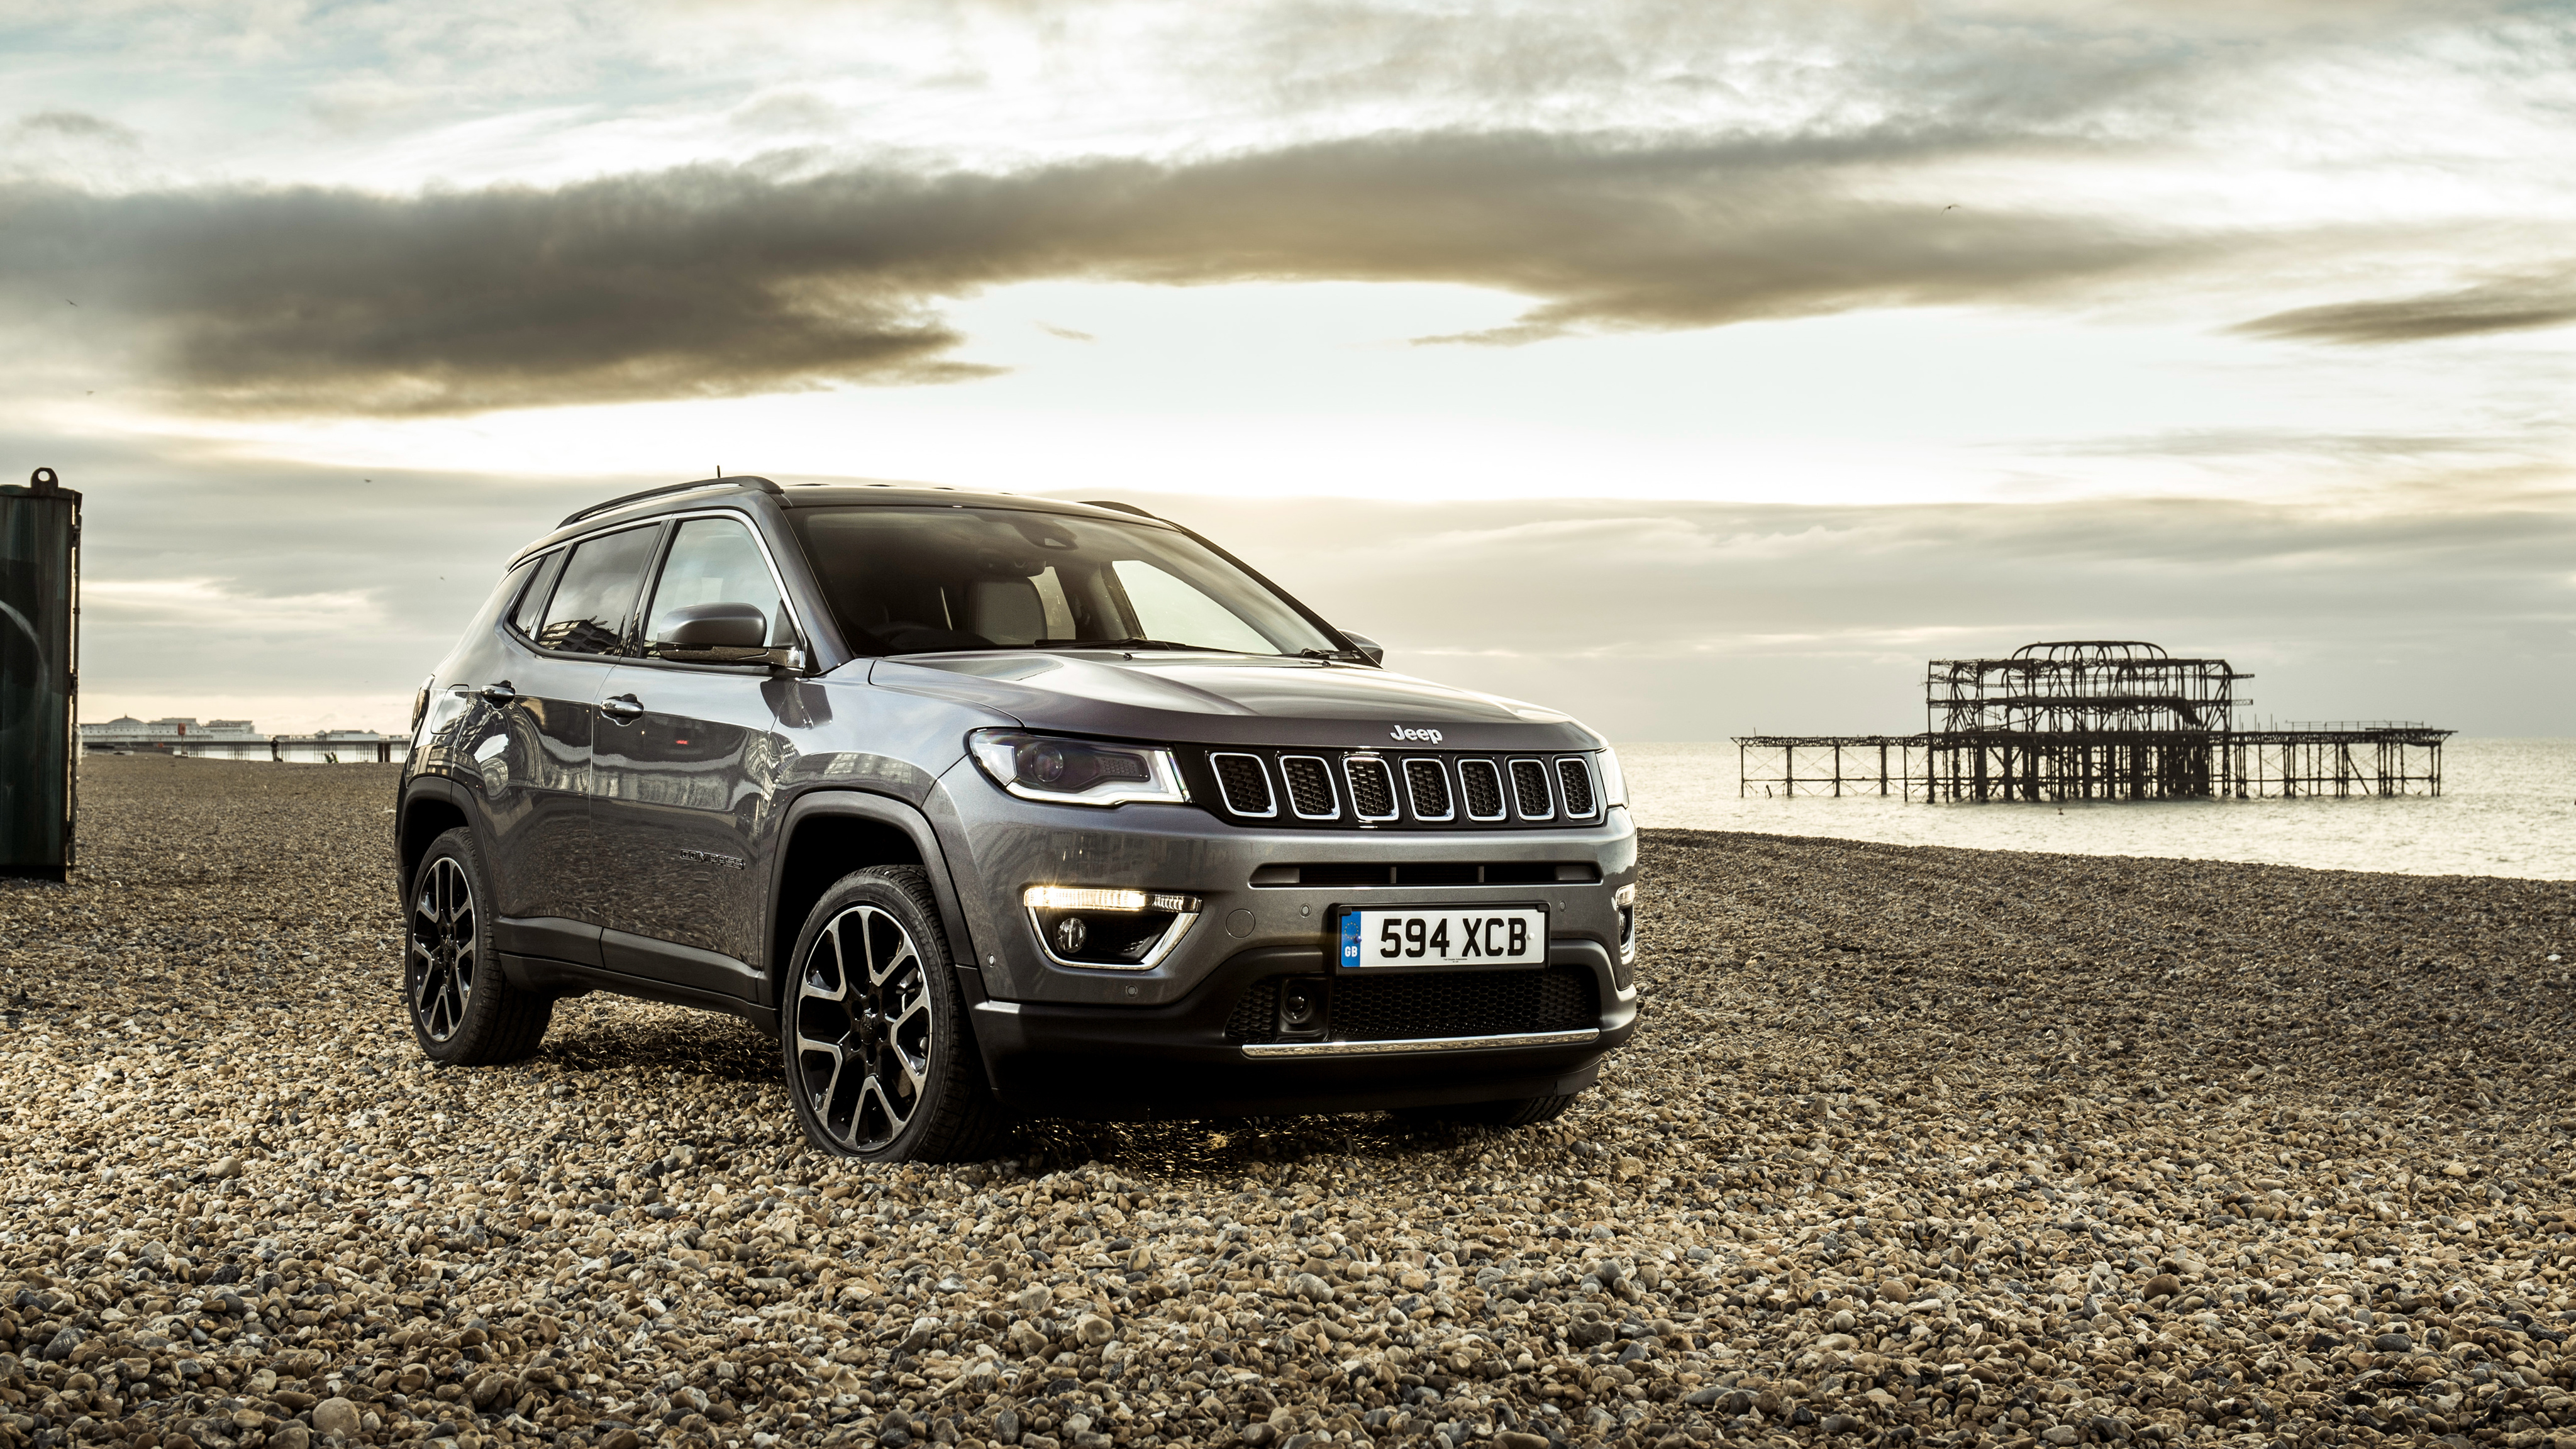 2018 Jeep Compass Limited Wallpaper Hd Car Wallpapers